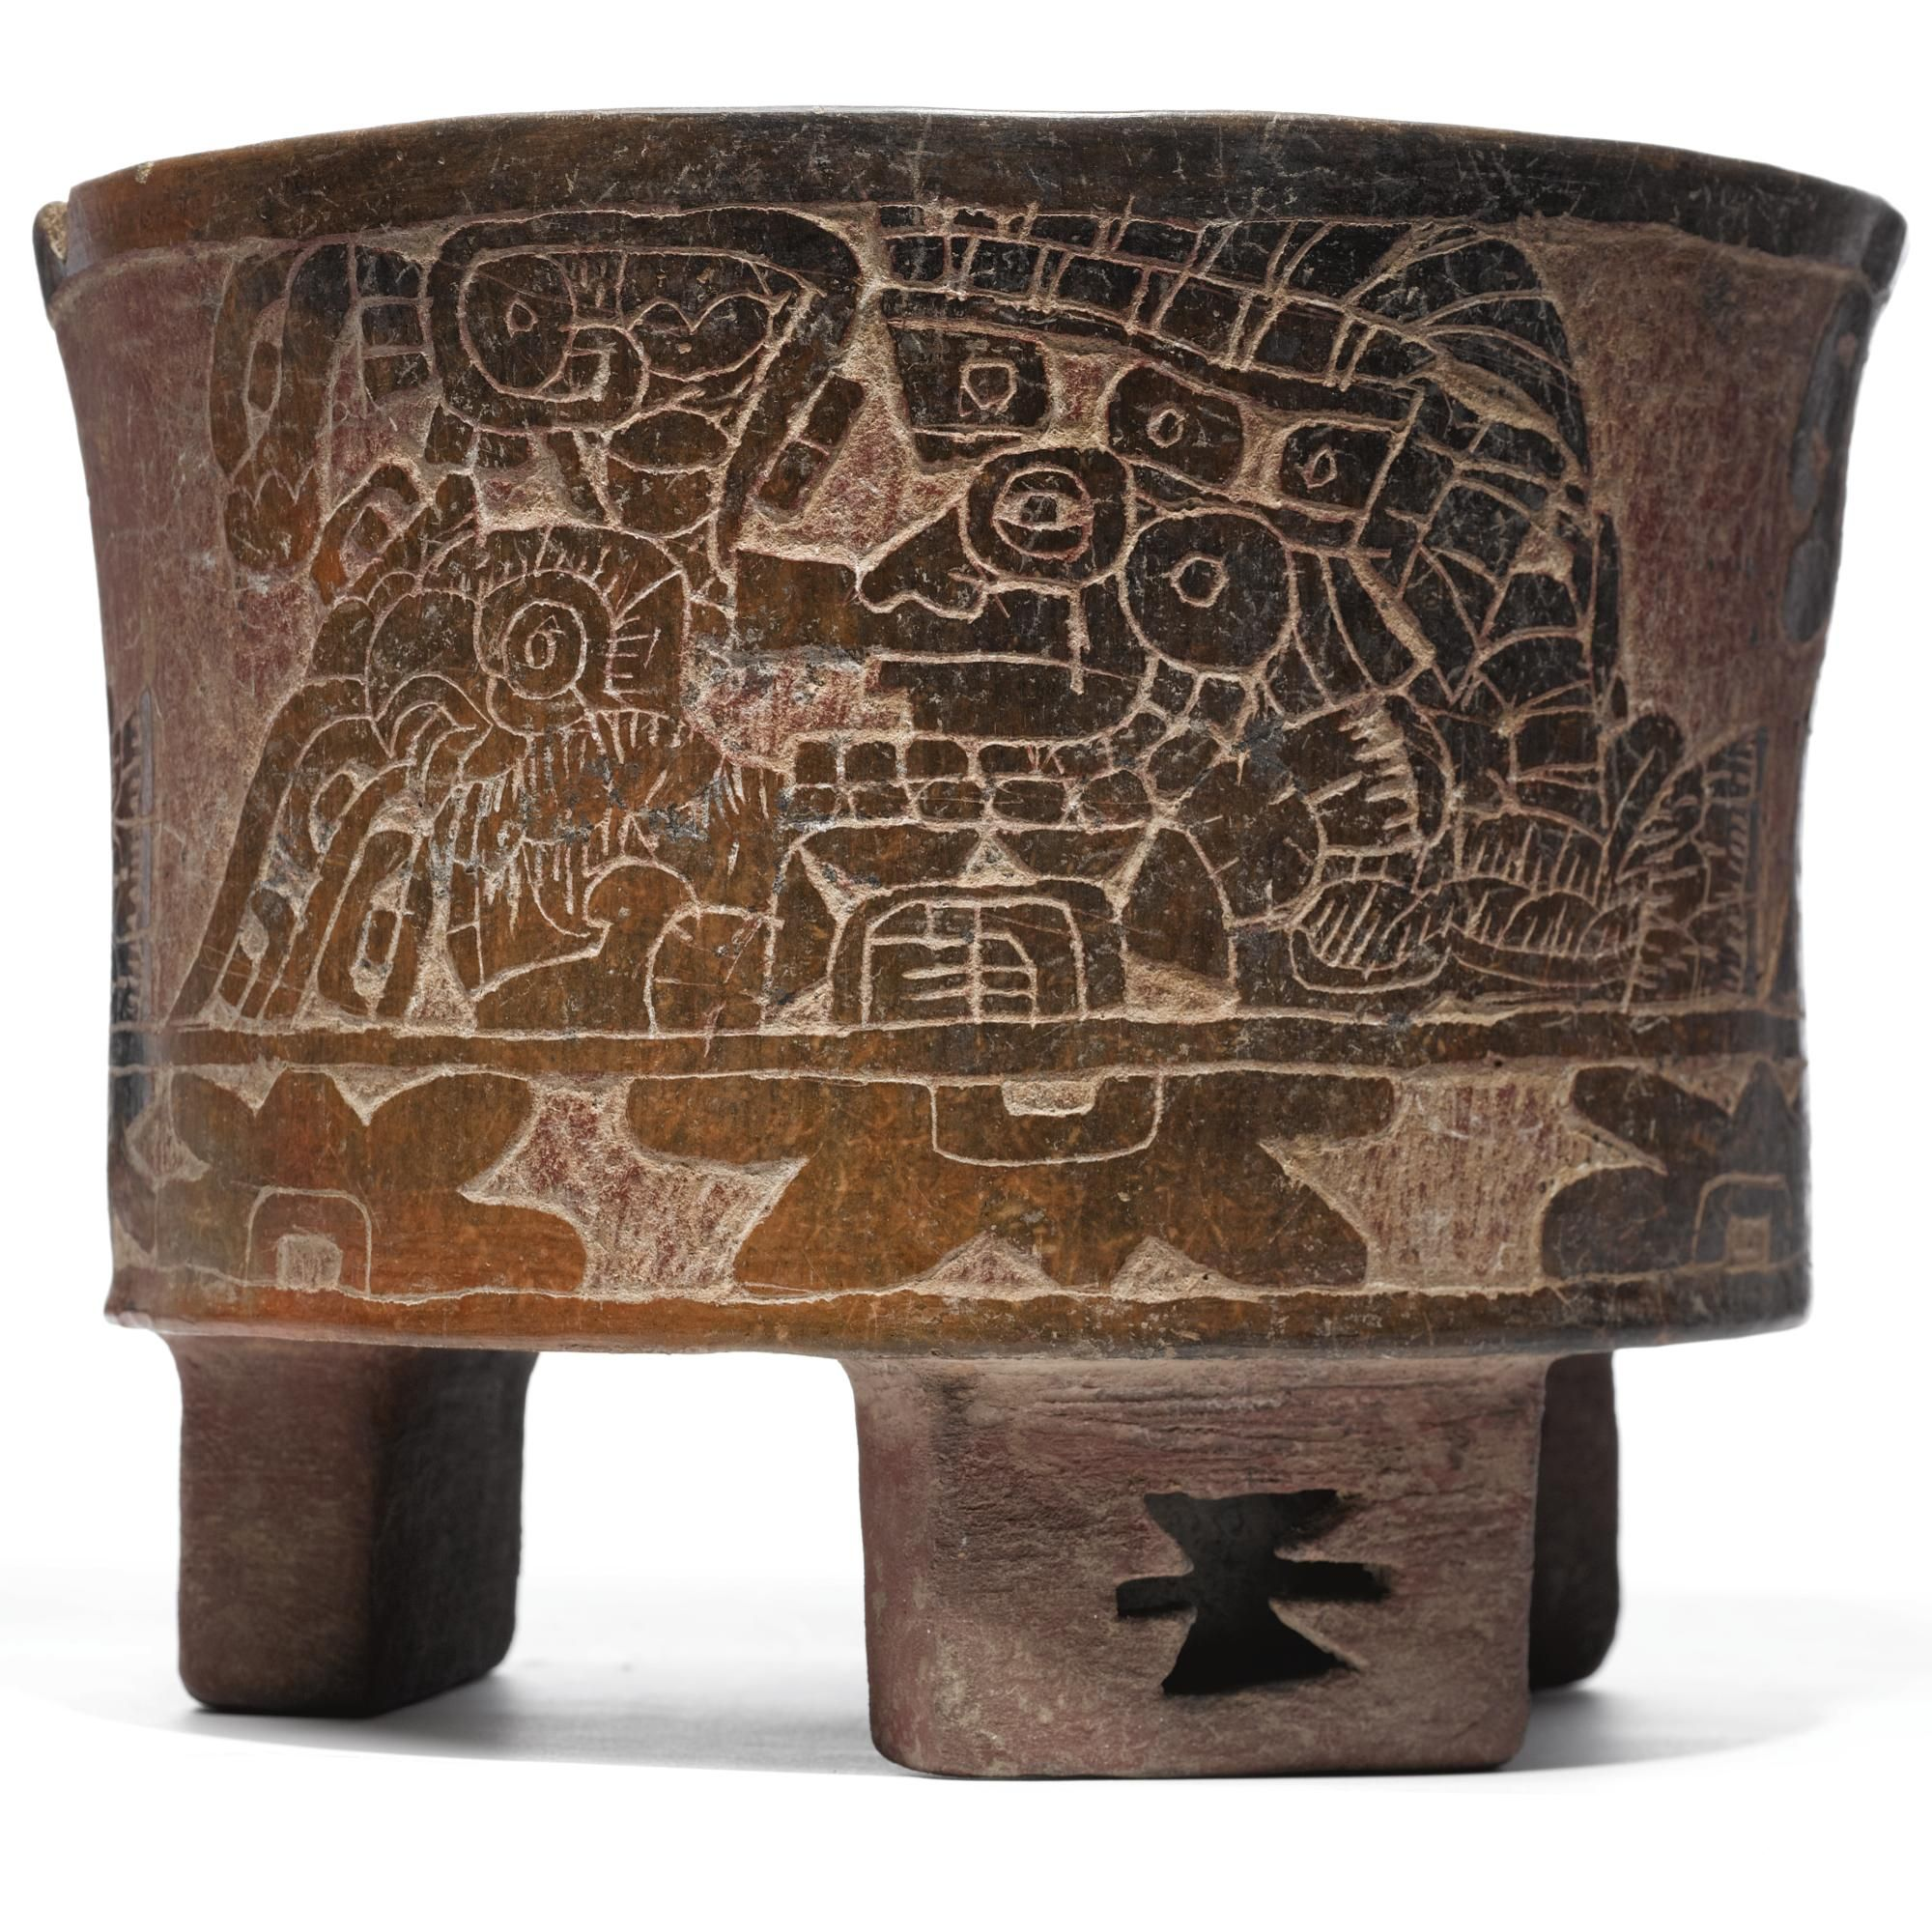 Teotihuacan incised tripod brownware vessel, Early Classic, ca. A.D. 250-450 © Sotheby's